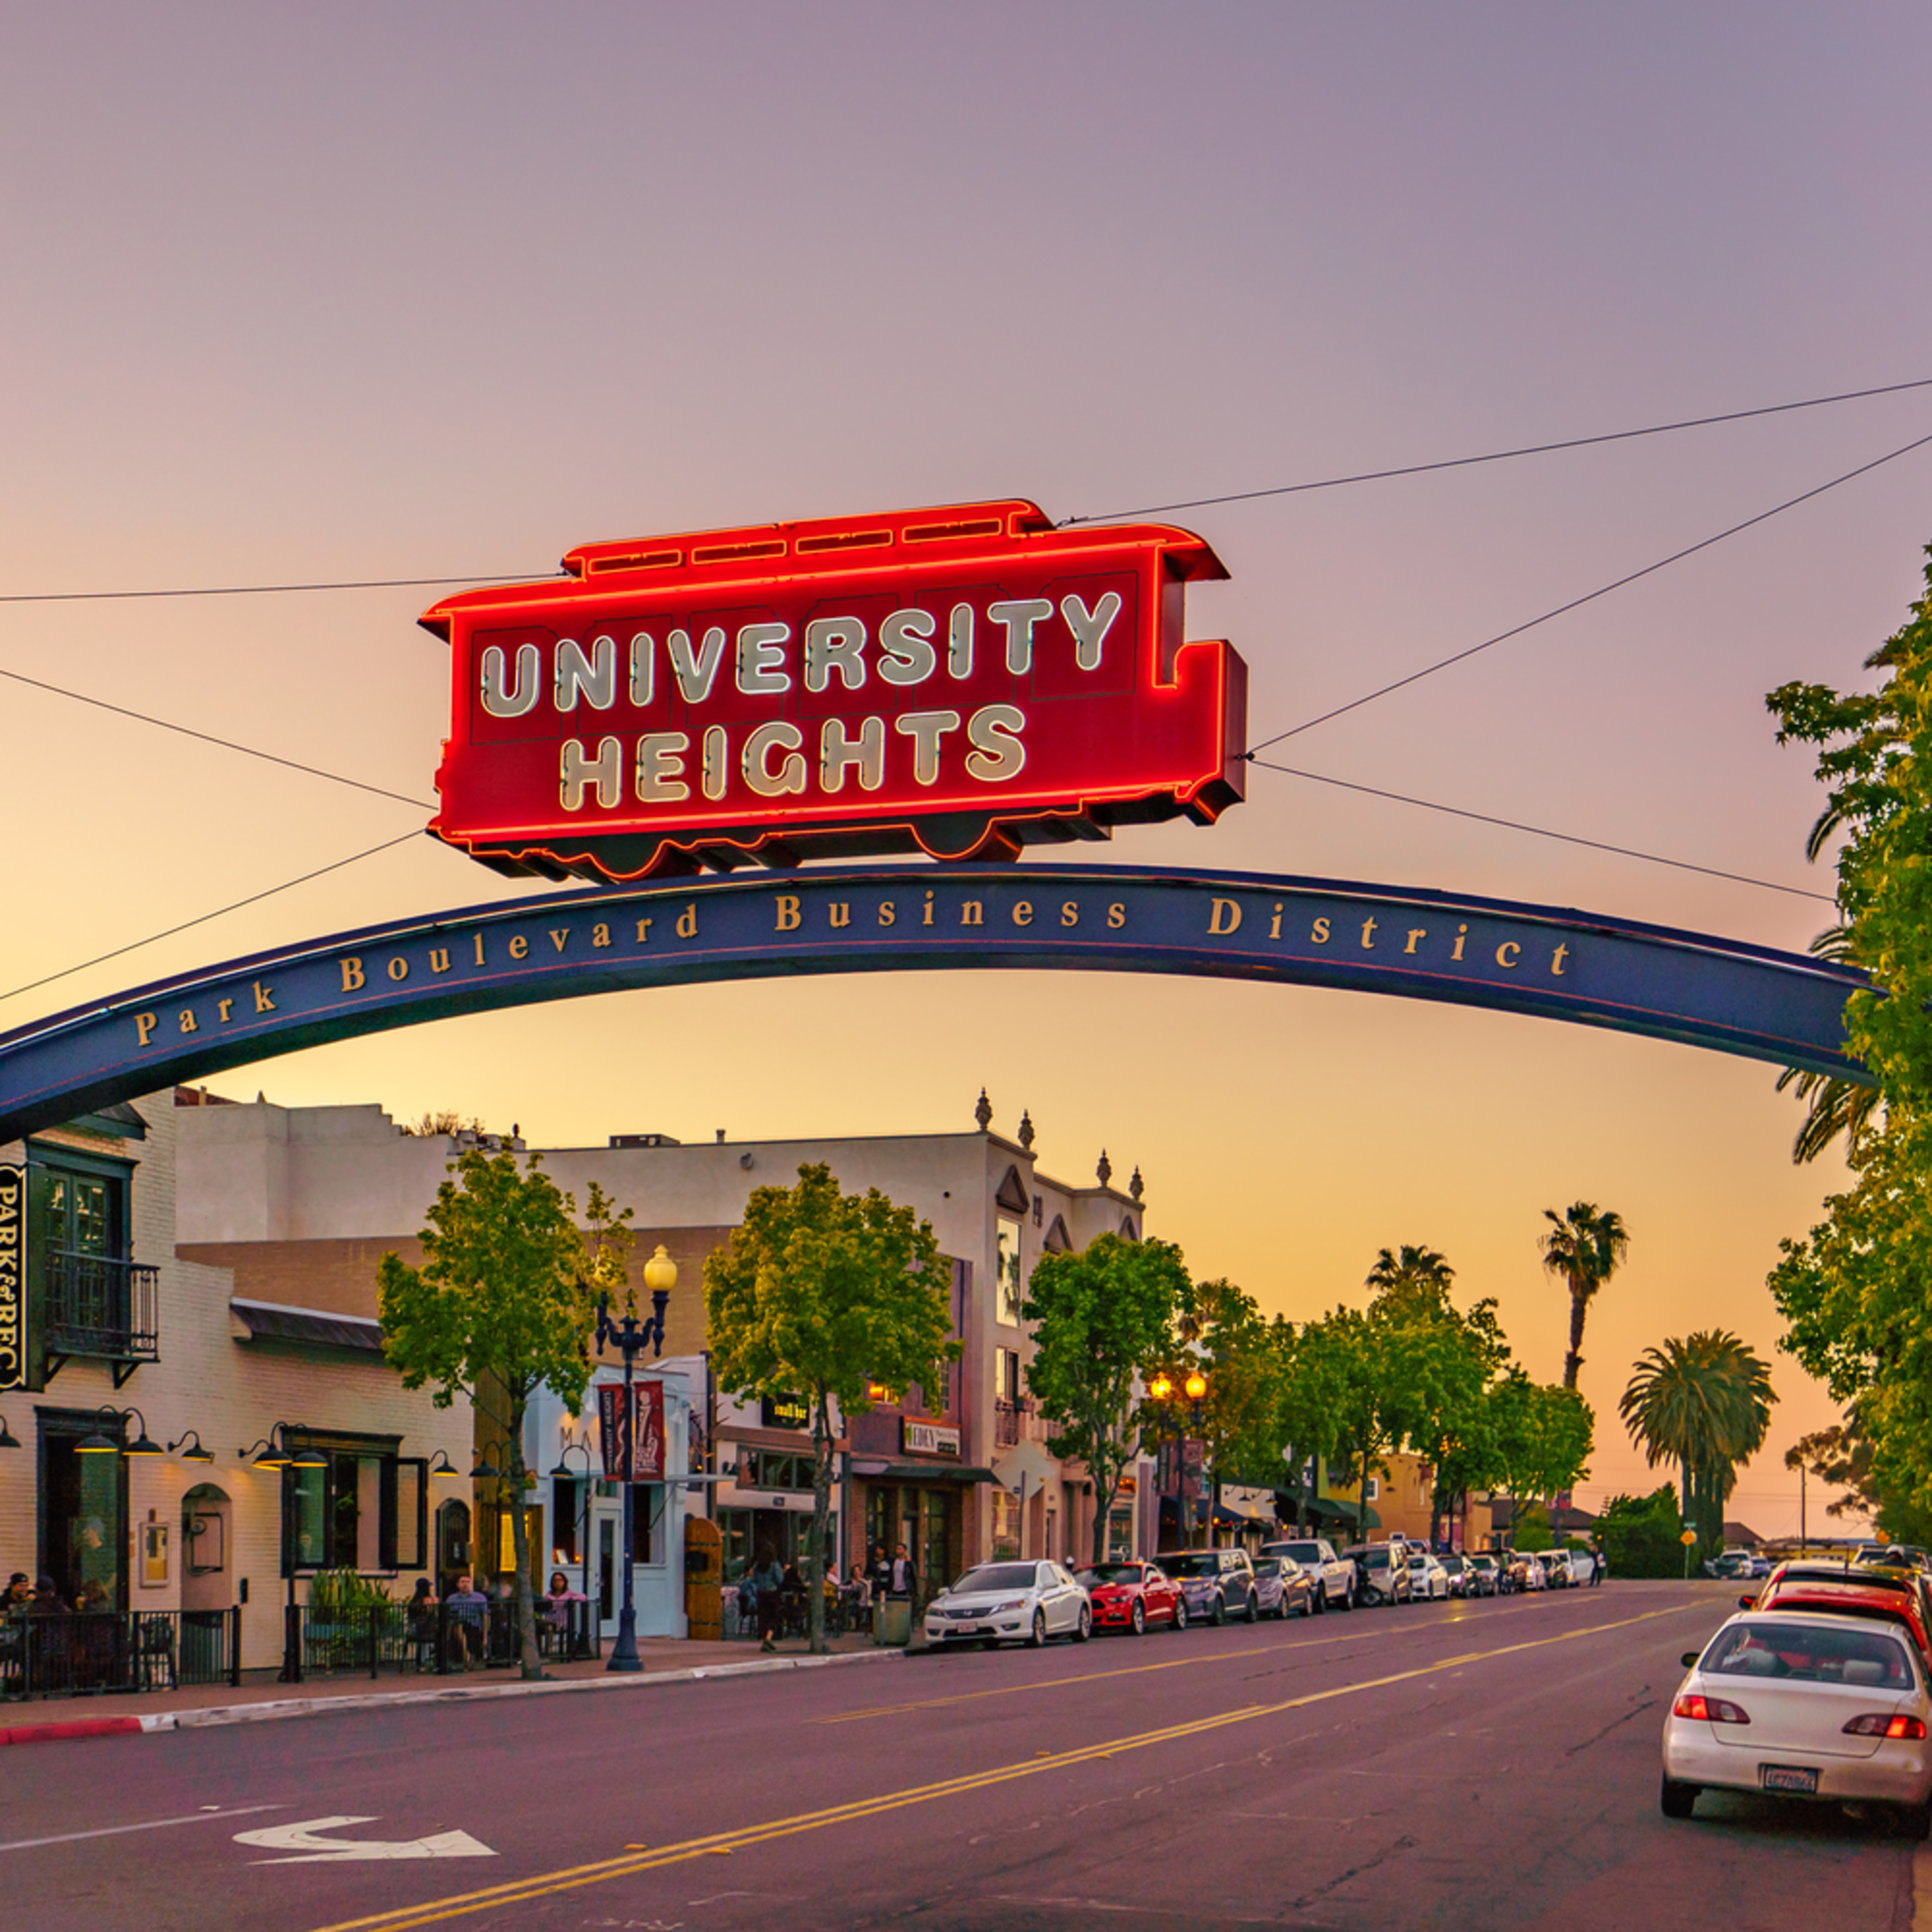 University heights in may 2 hqj0ay